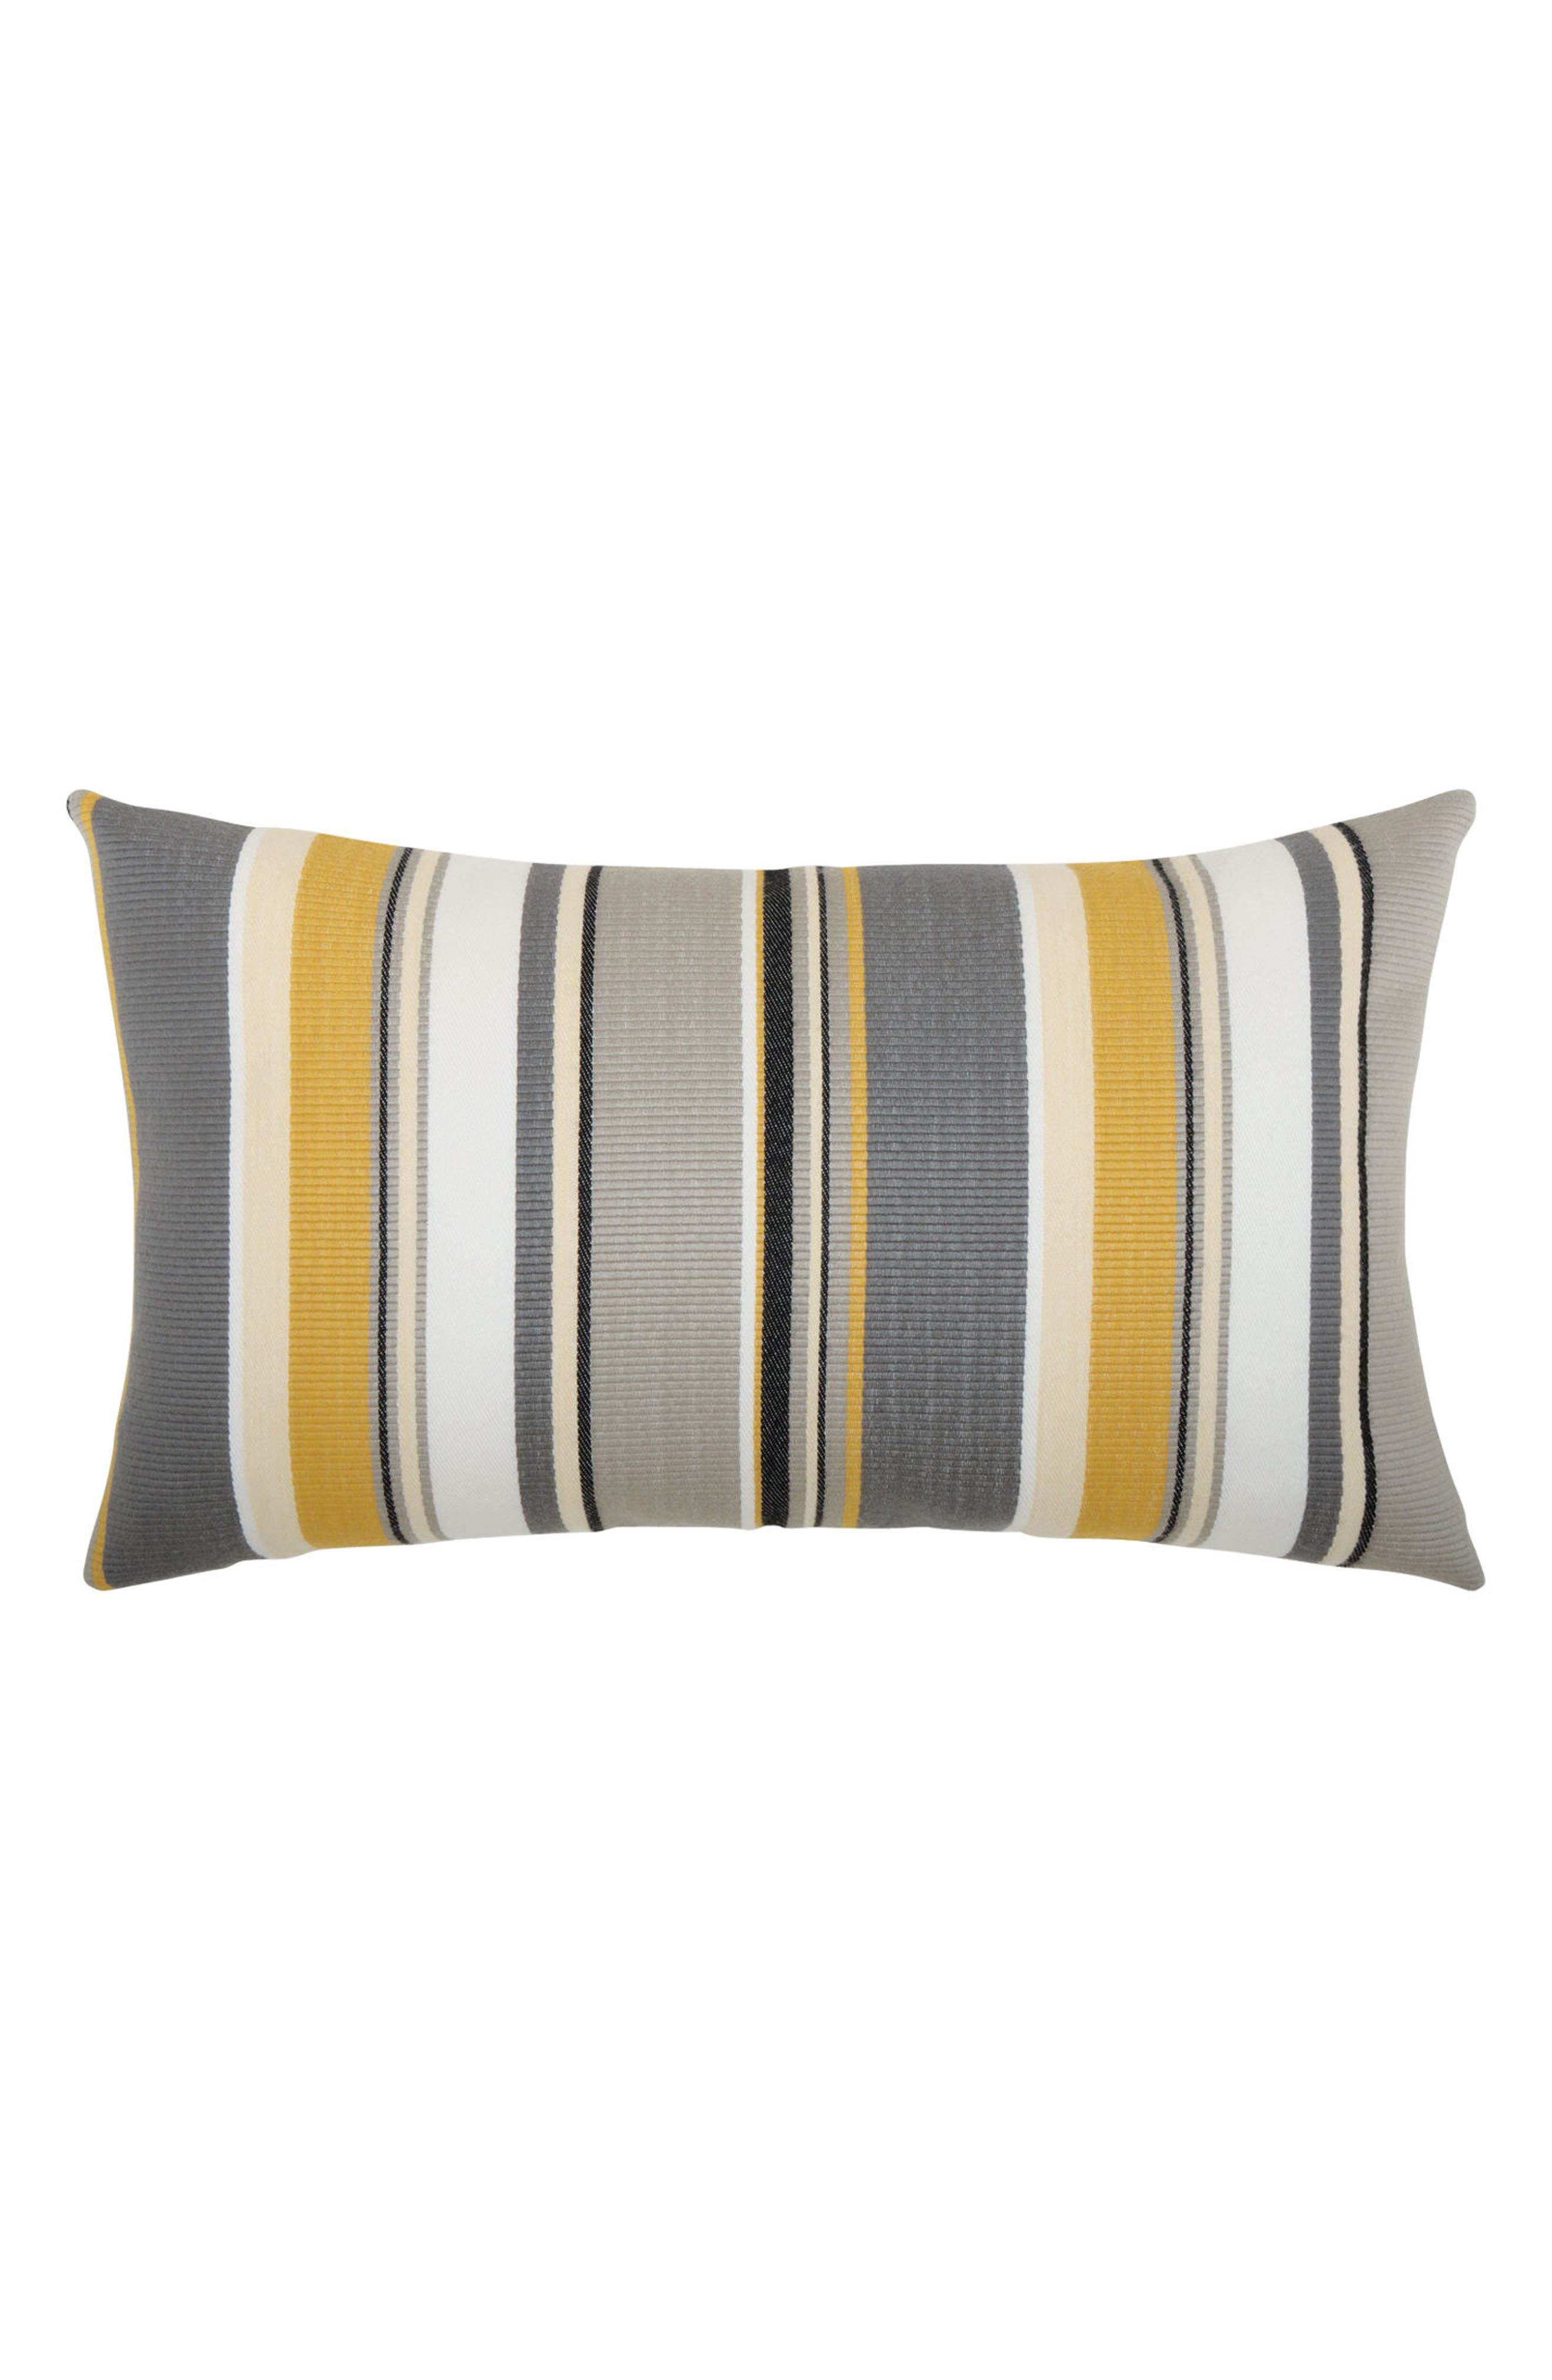 Shadow Stripe Lumbar Pillow,                             Main thumbnail 1, color,                             Grey/ Gold